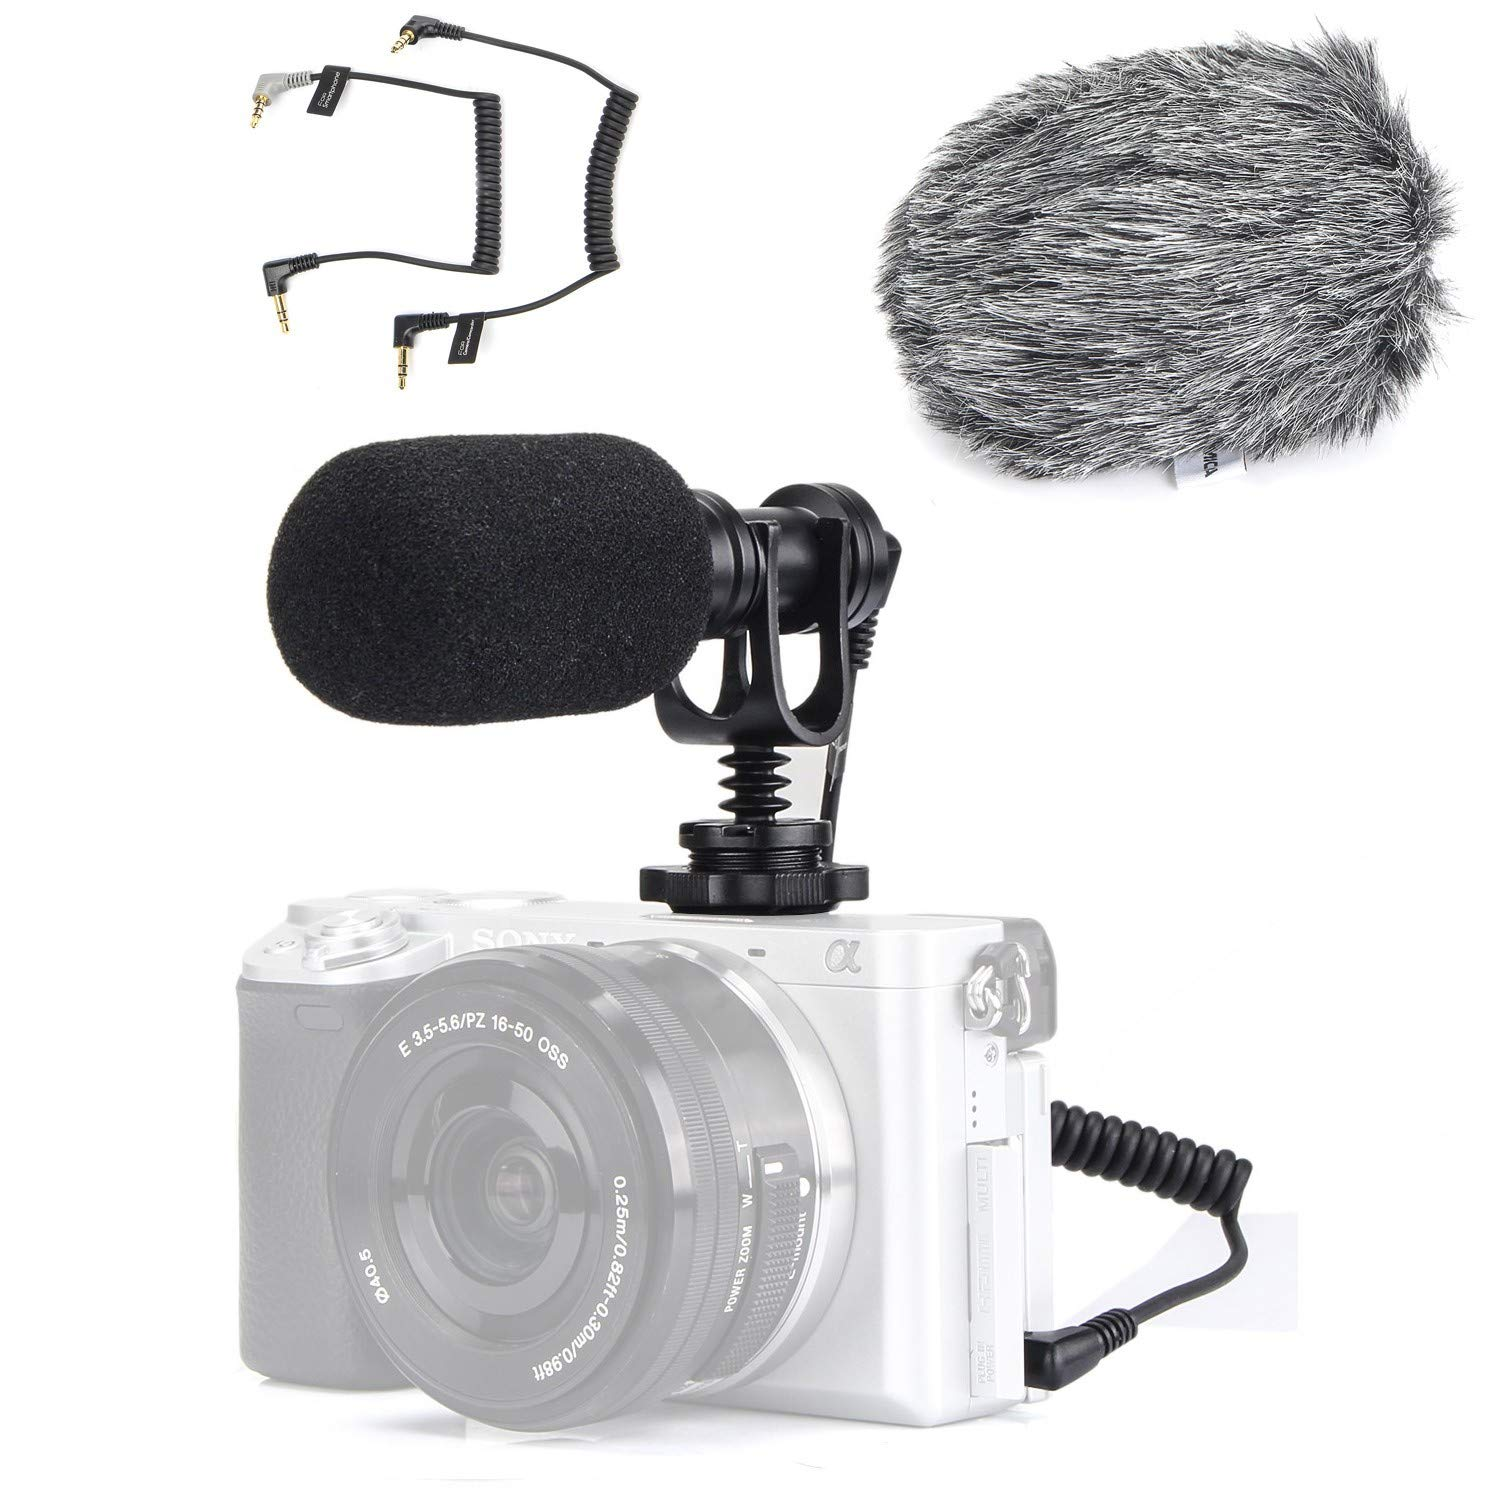 EACHSHOT Video Microphone Mic for Camera Canon, Nikon, Sony A7III A6500 A6400 A6300, Panasonic GH5 GH4, GoPro Mic Adapter, iPhone Vlog Vlogger w/ 3.5mm TRRS TRS Cable [NOT for Rebel T6] by EACHSHOT